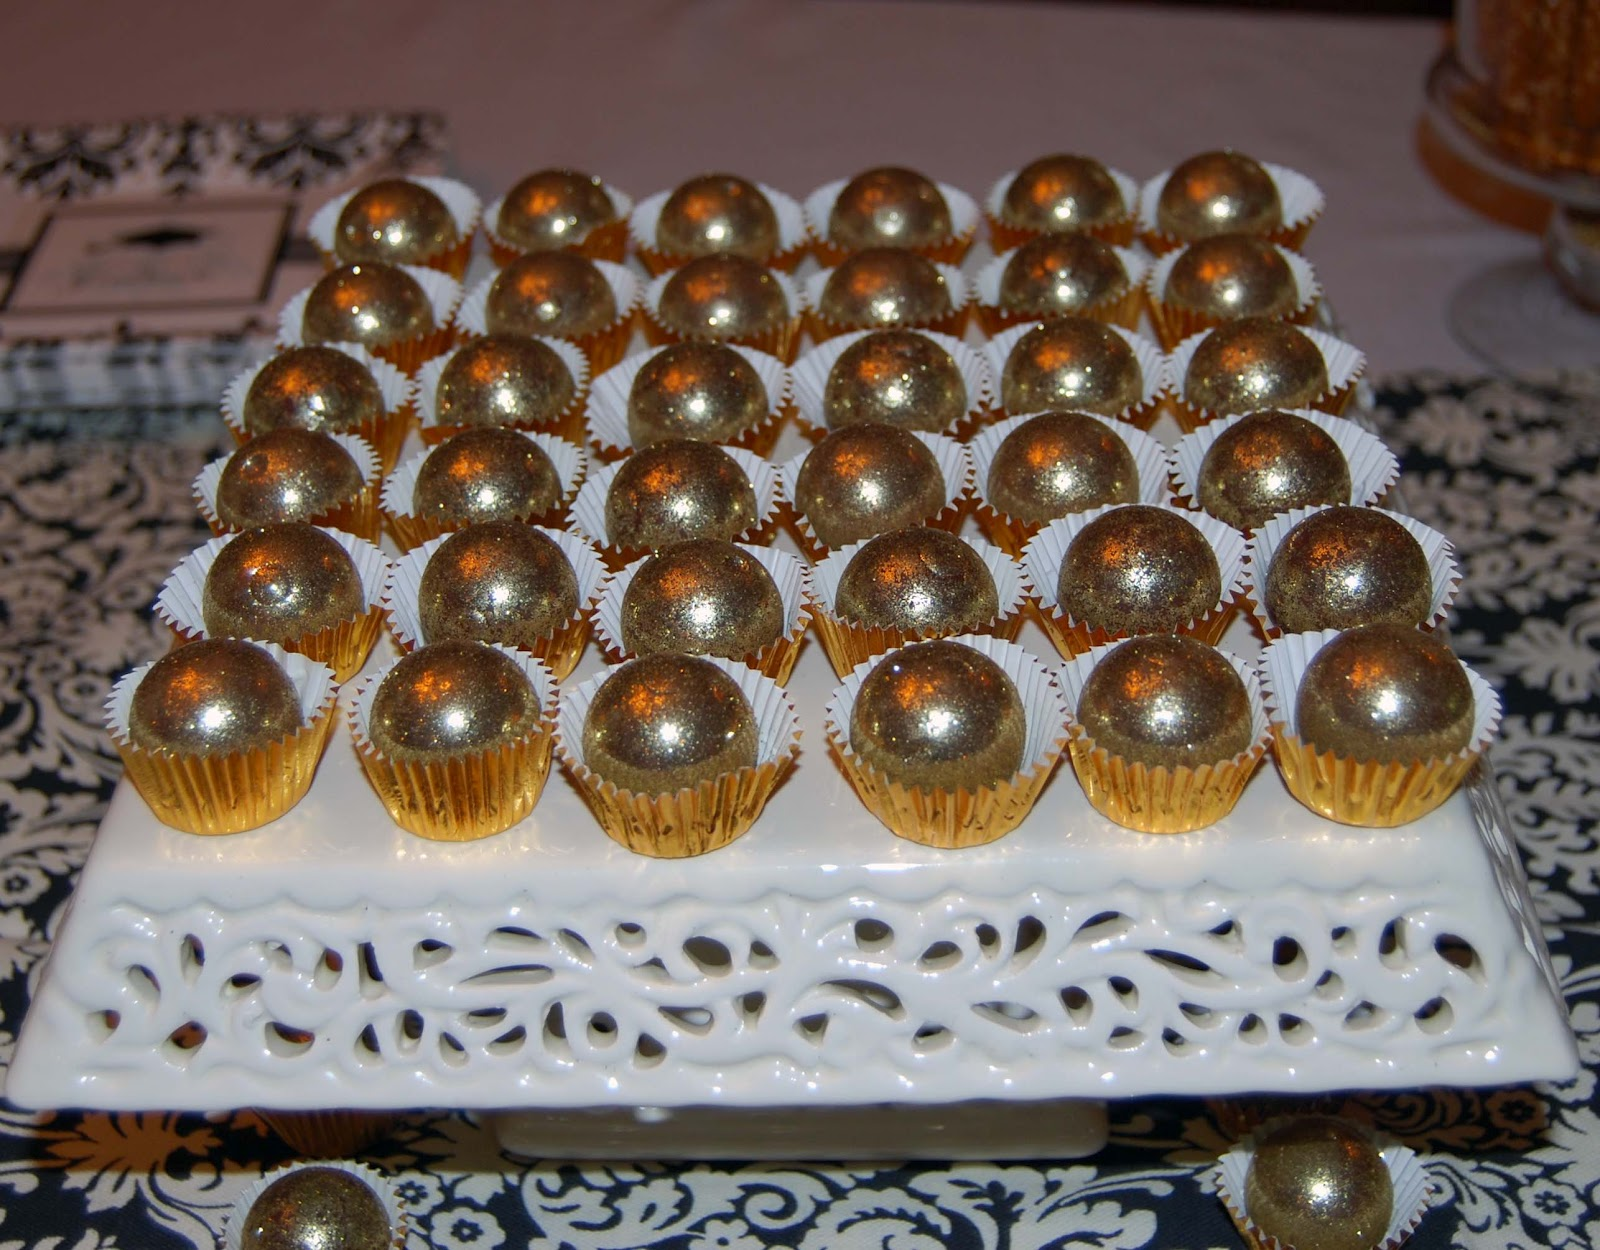 Milk chocolate bonbons with caramel filling and covered in edible gold